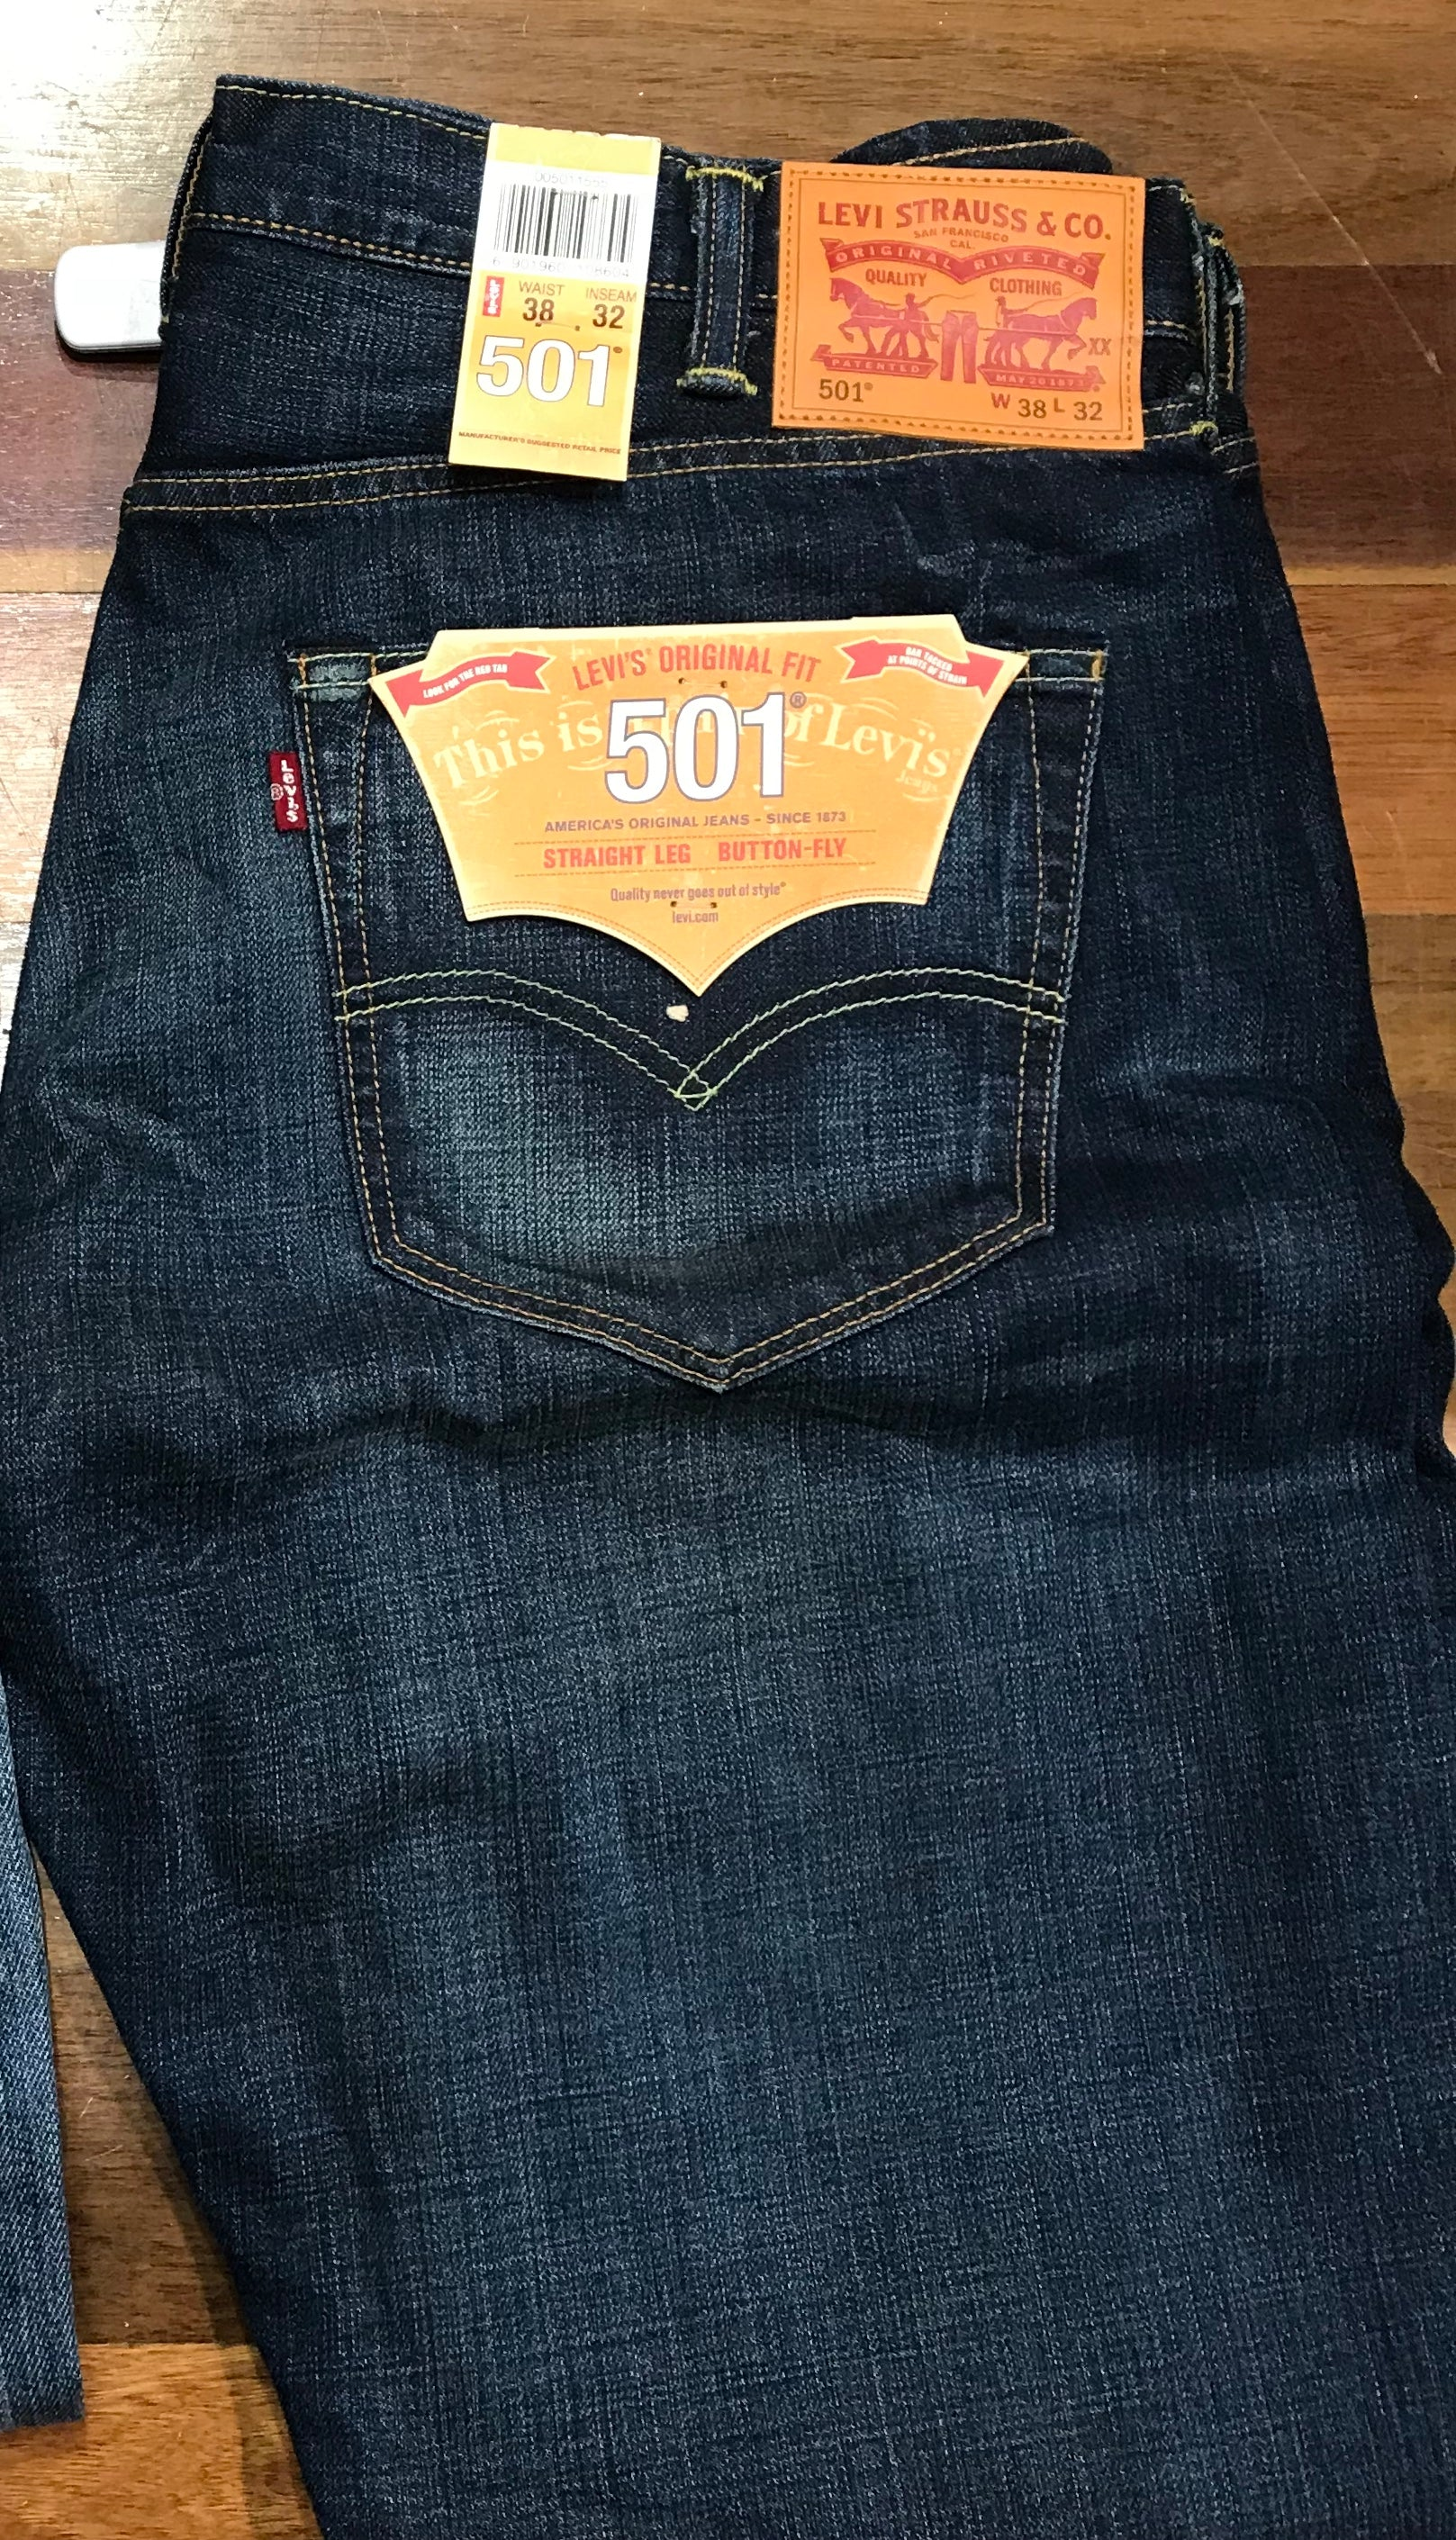 538130d4dec Levi's 501 Original fit Straight WPL432 Leg Button Fly Famous Rock Shop  Newcastle 2300 NSW Australia